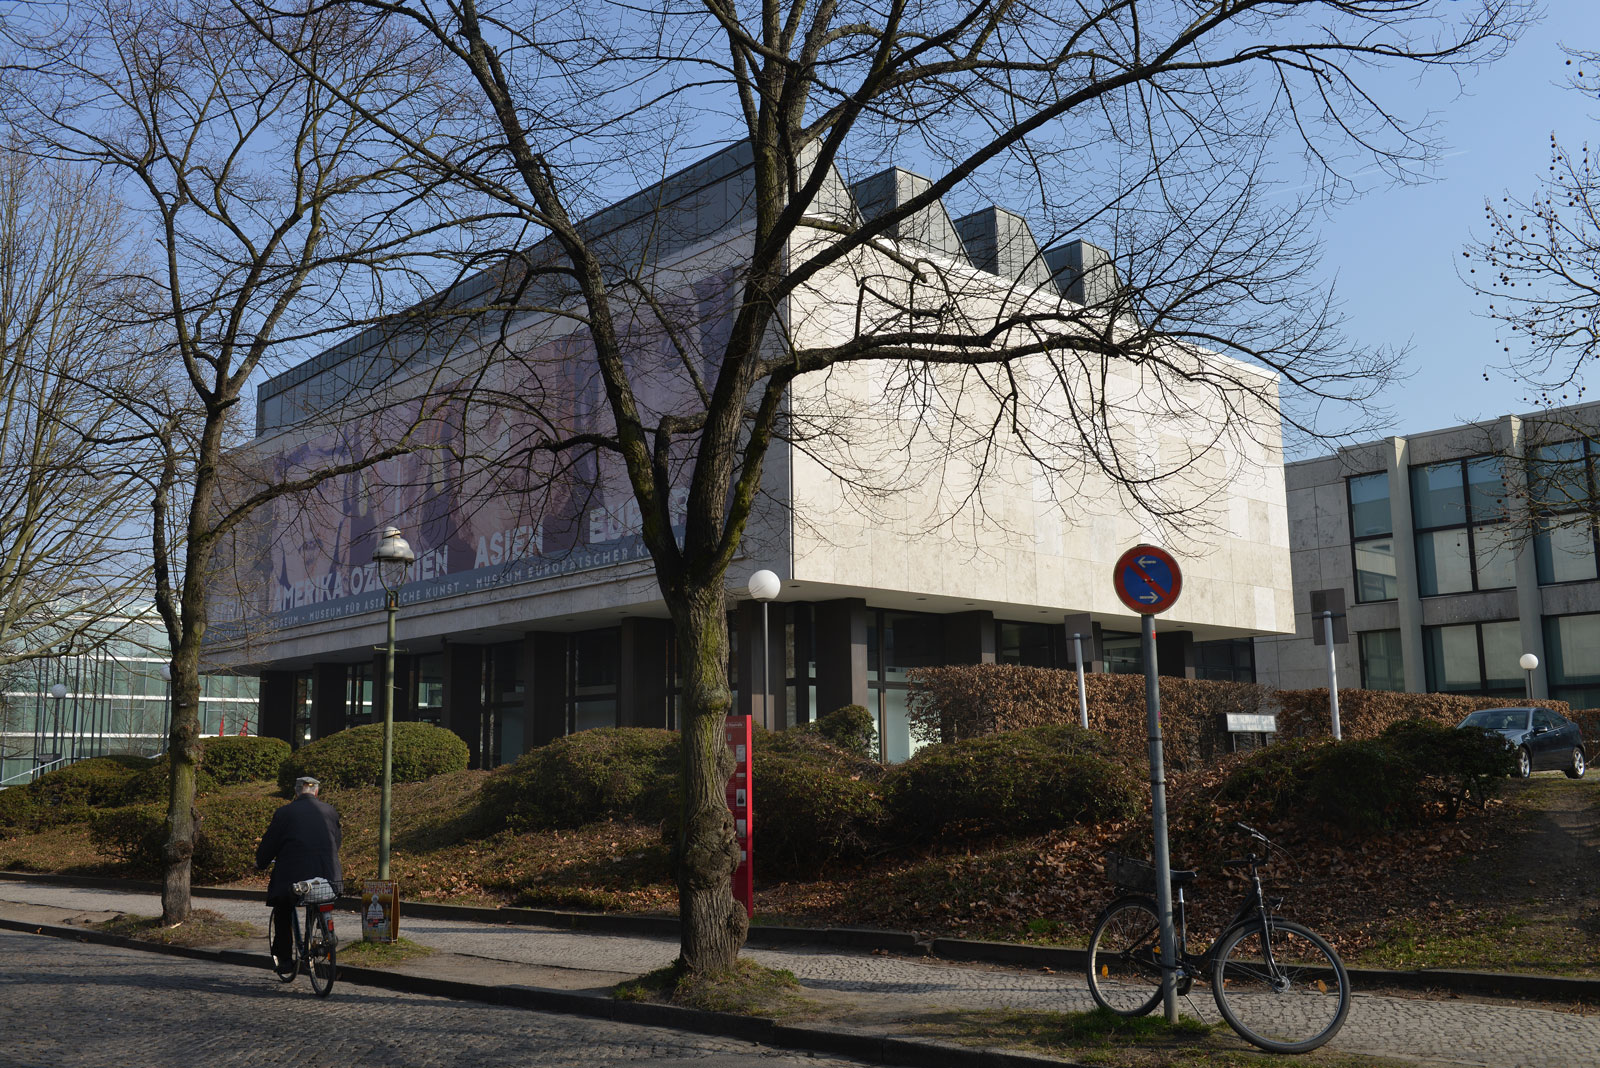 The Dahlem museums, Berlin, March 11, 2014